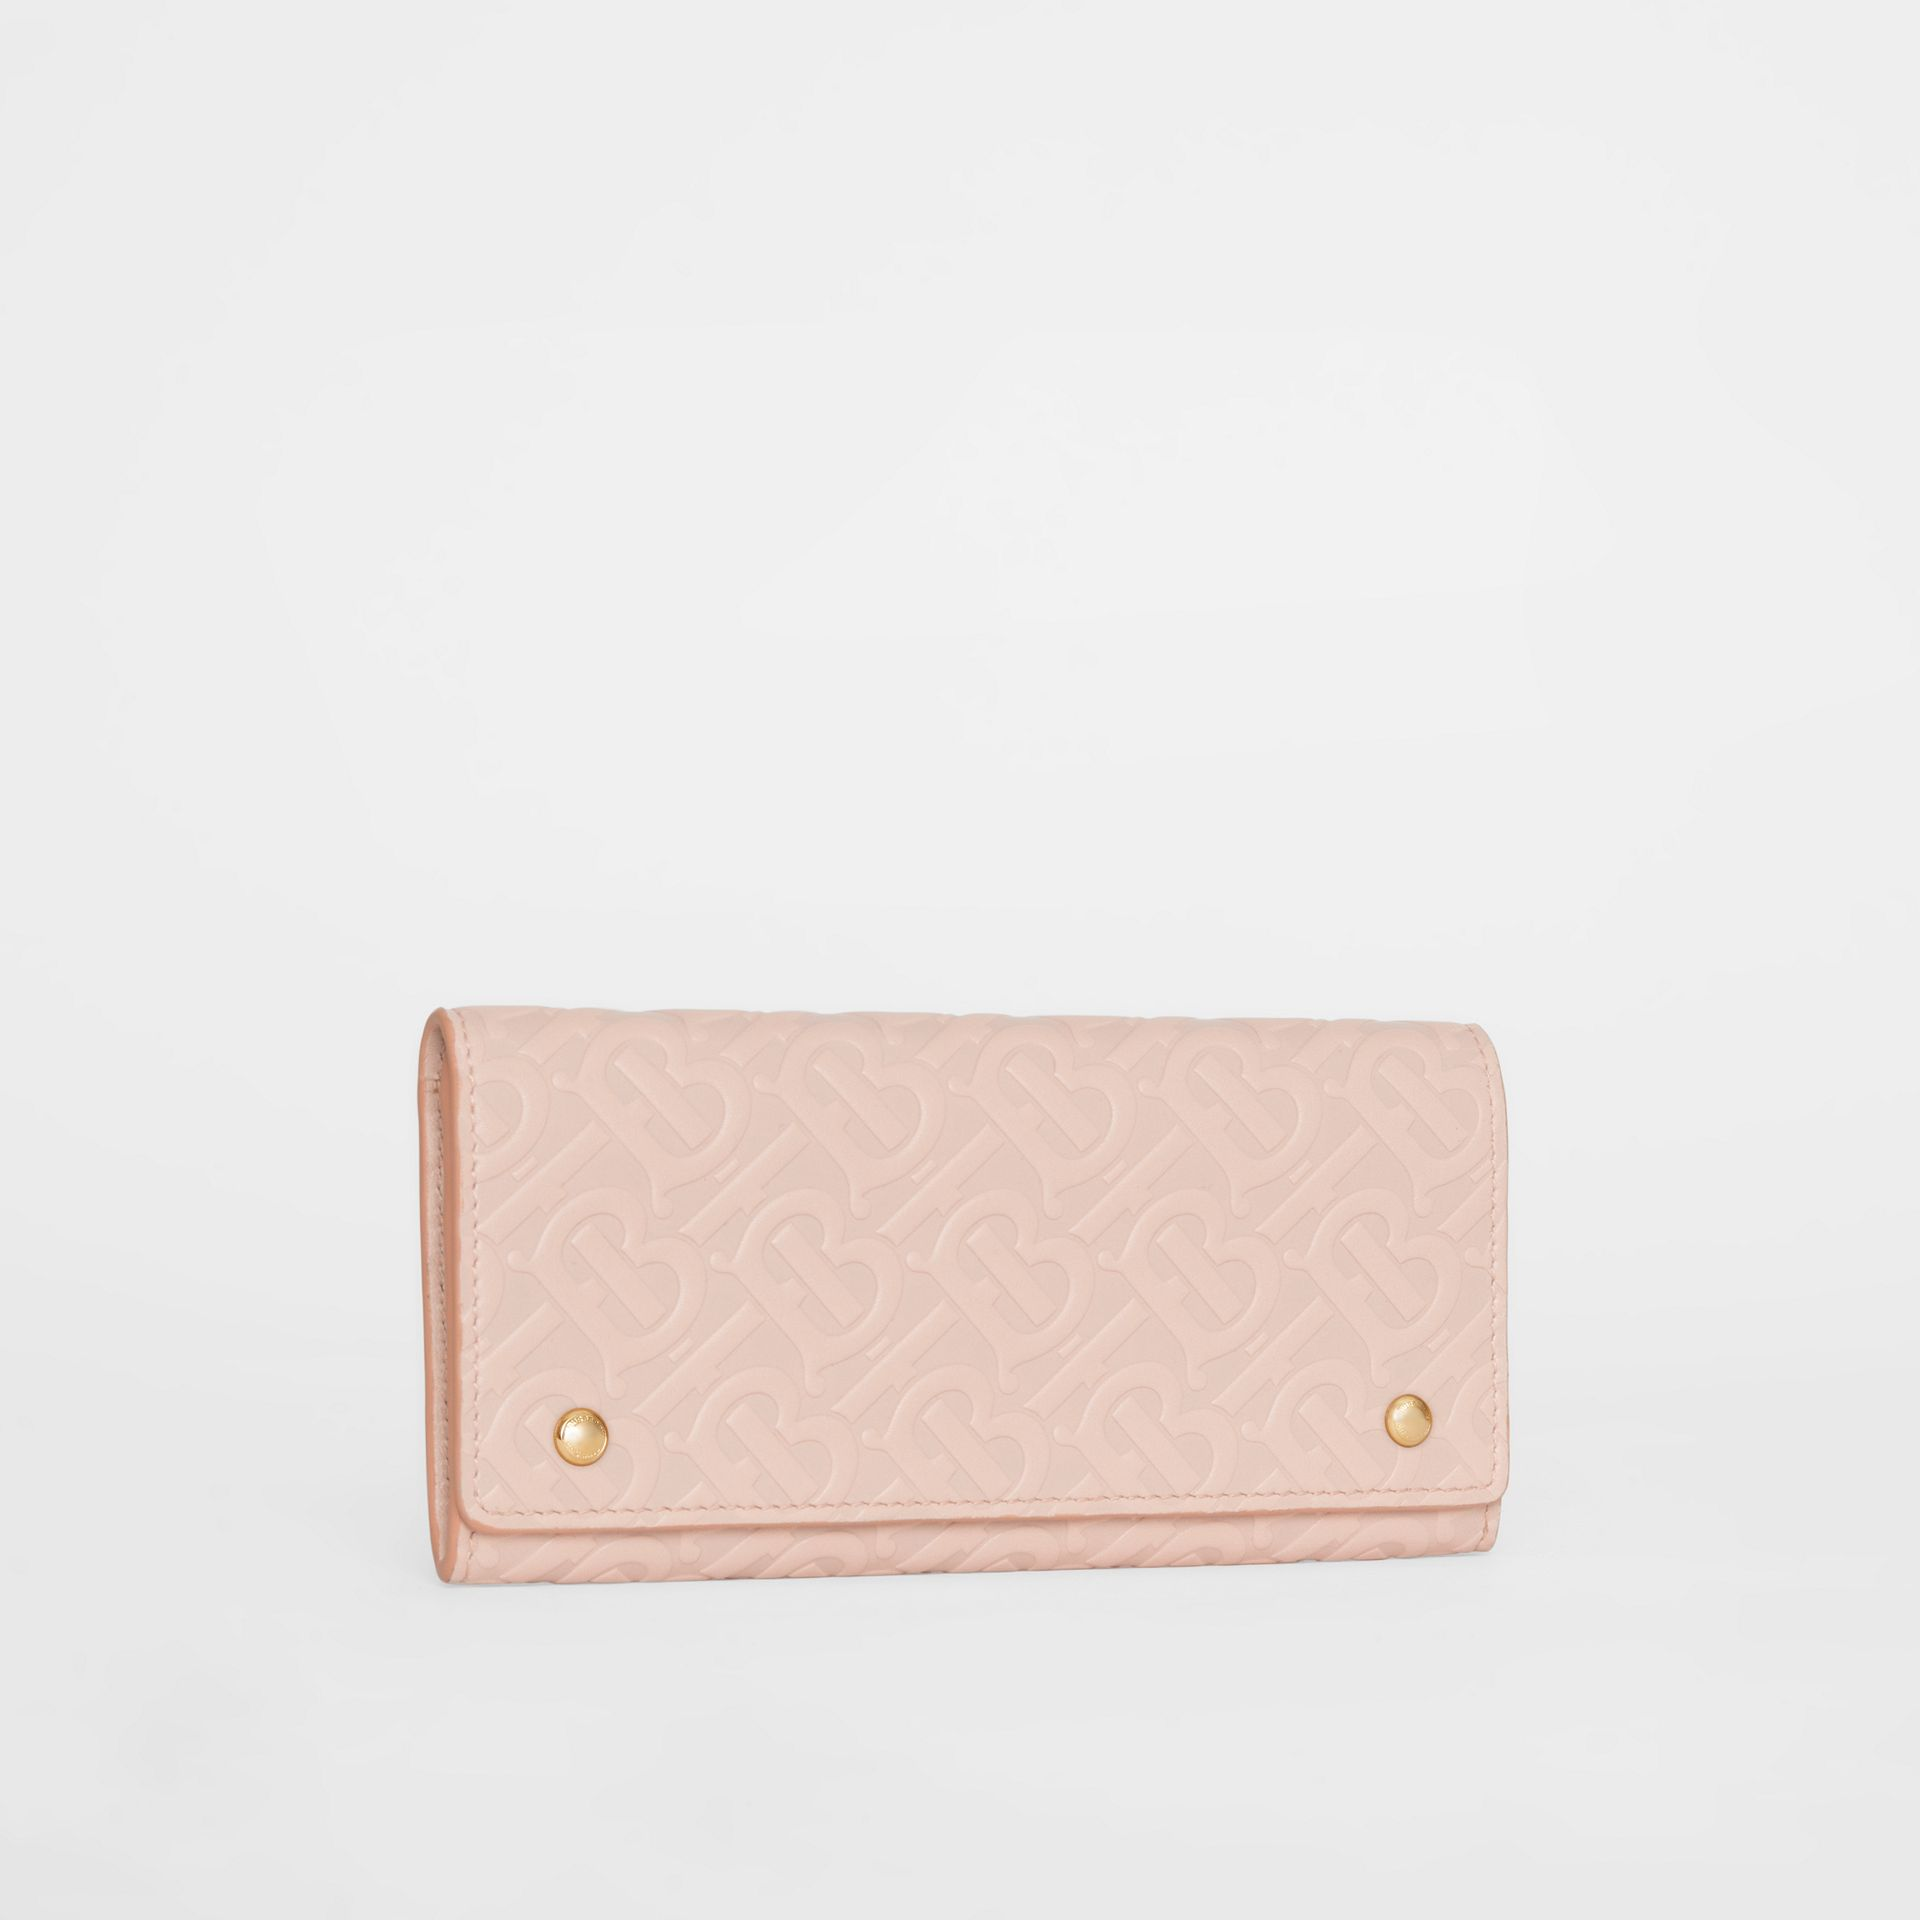 Monogram Leather Continental Wallet in Rose Beige - Women | Burberry Australia - gallery image 3